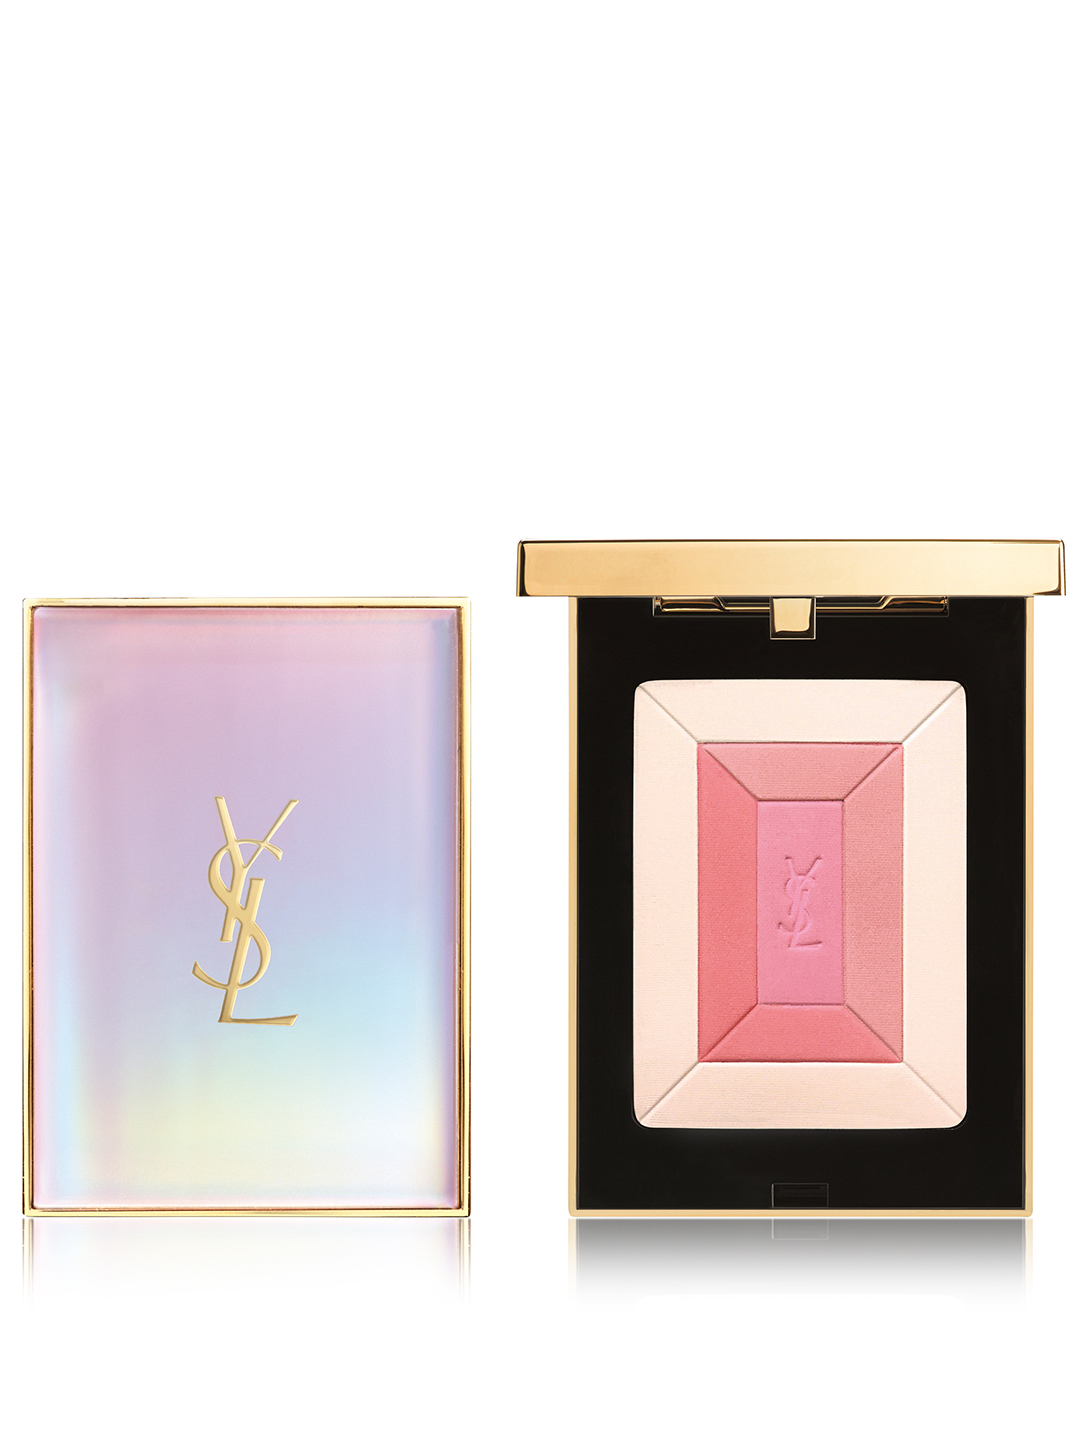 YVES SAINT LAURENT Shimmer Rush Collector Blush Palette - Spring Look 2019 Beauty